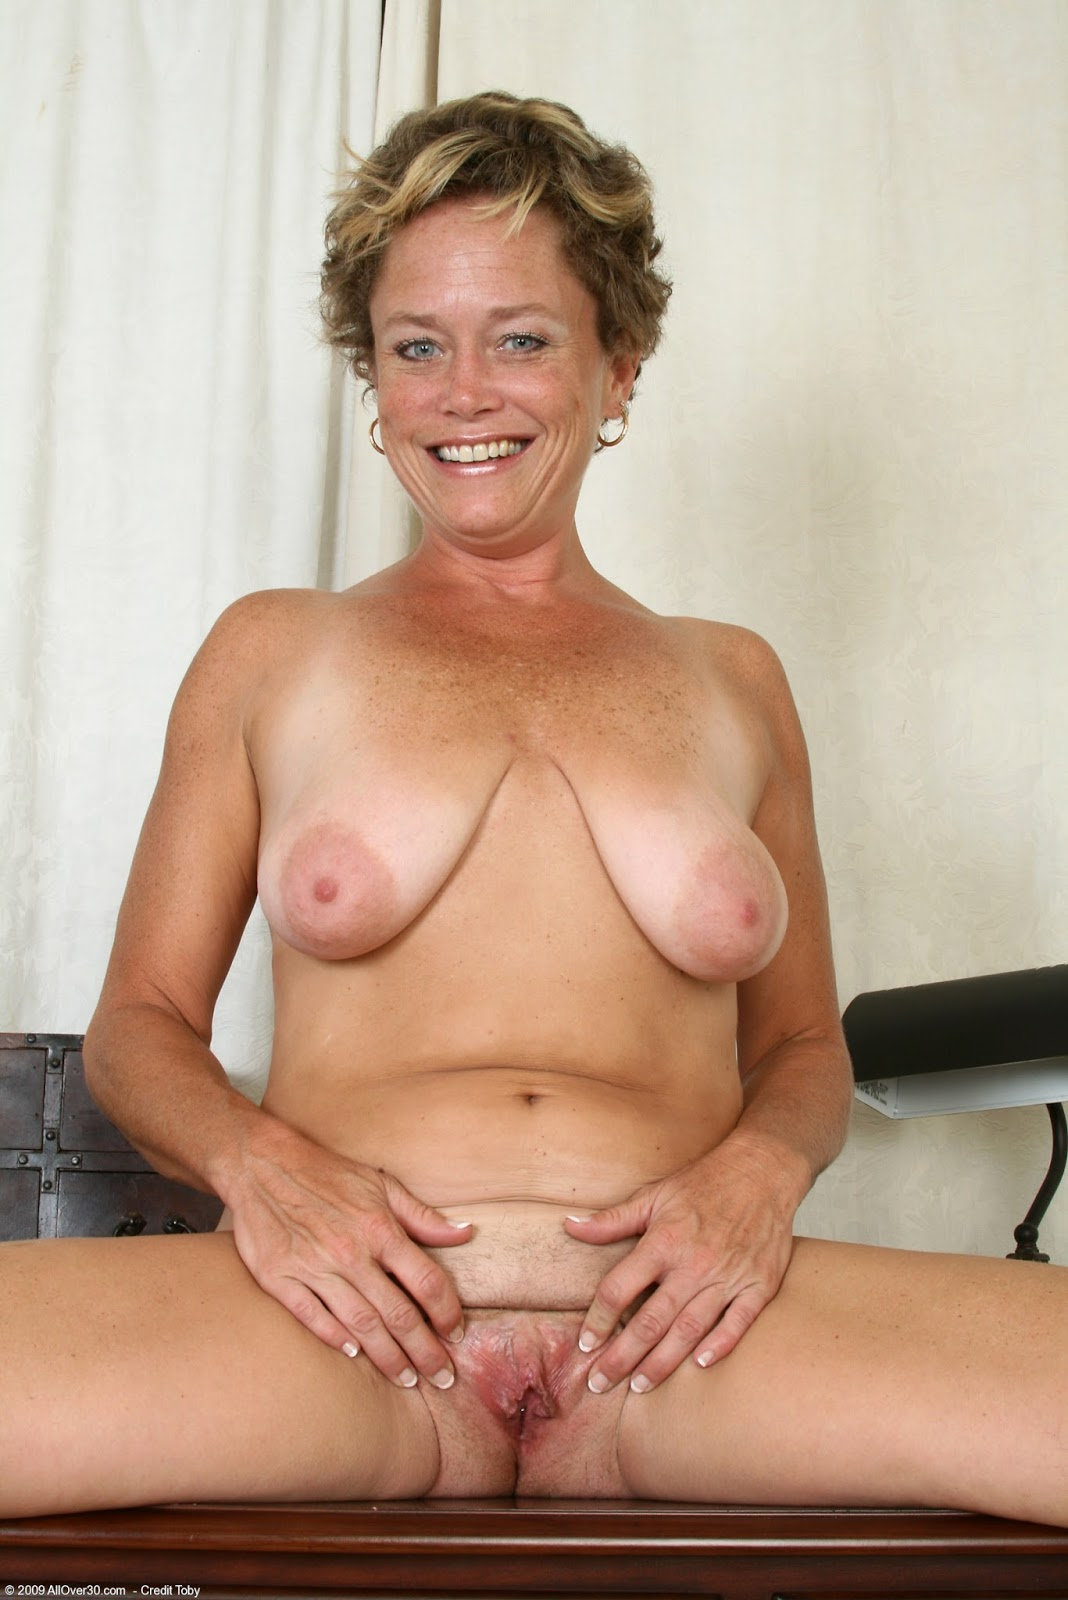 Archive Of Old Women Allo30 Photosets  Videos-6486